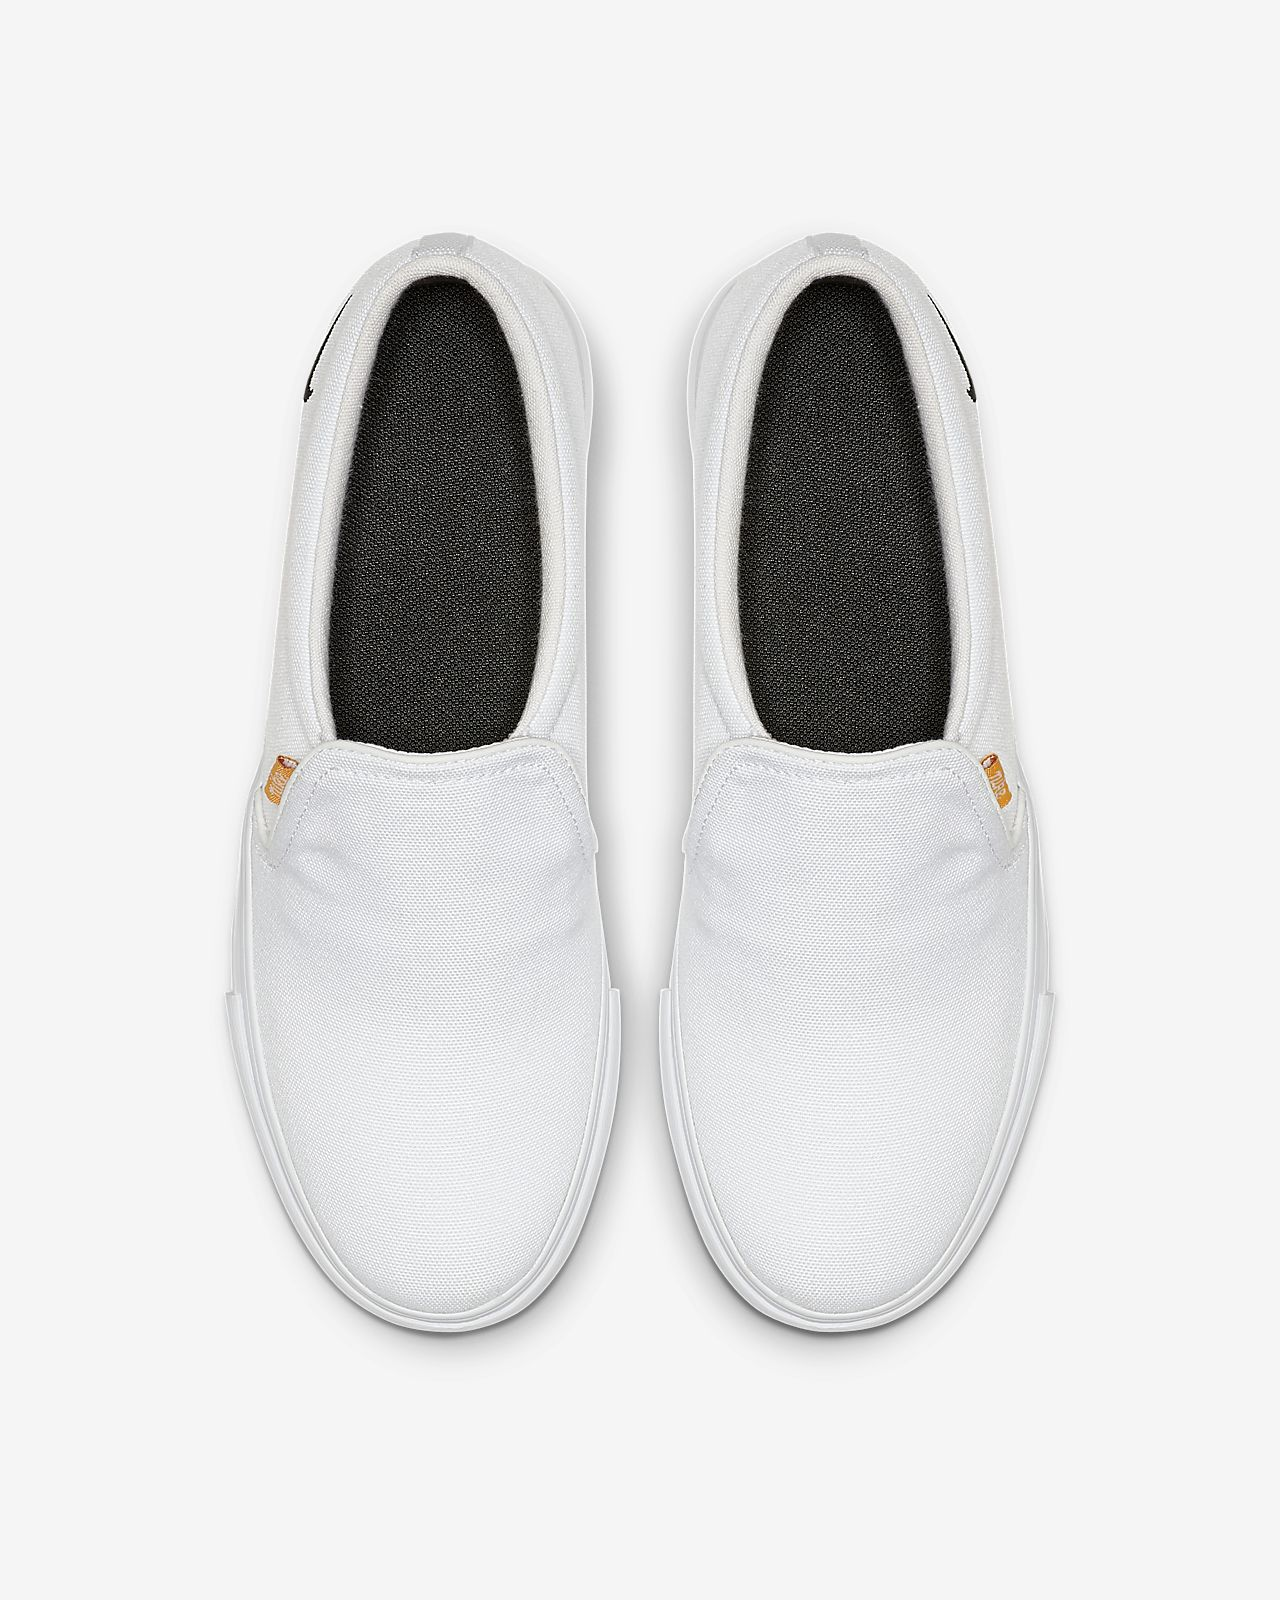 4408000fbd9 NikeCourt Royale AC Women's Slip-On Shoe. Nike.com ID